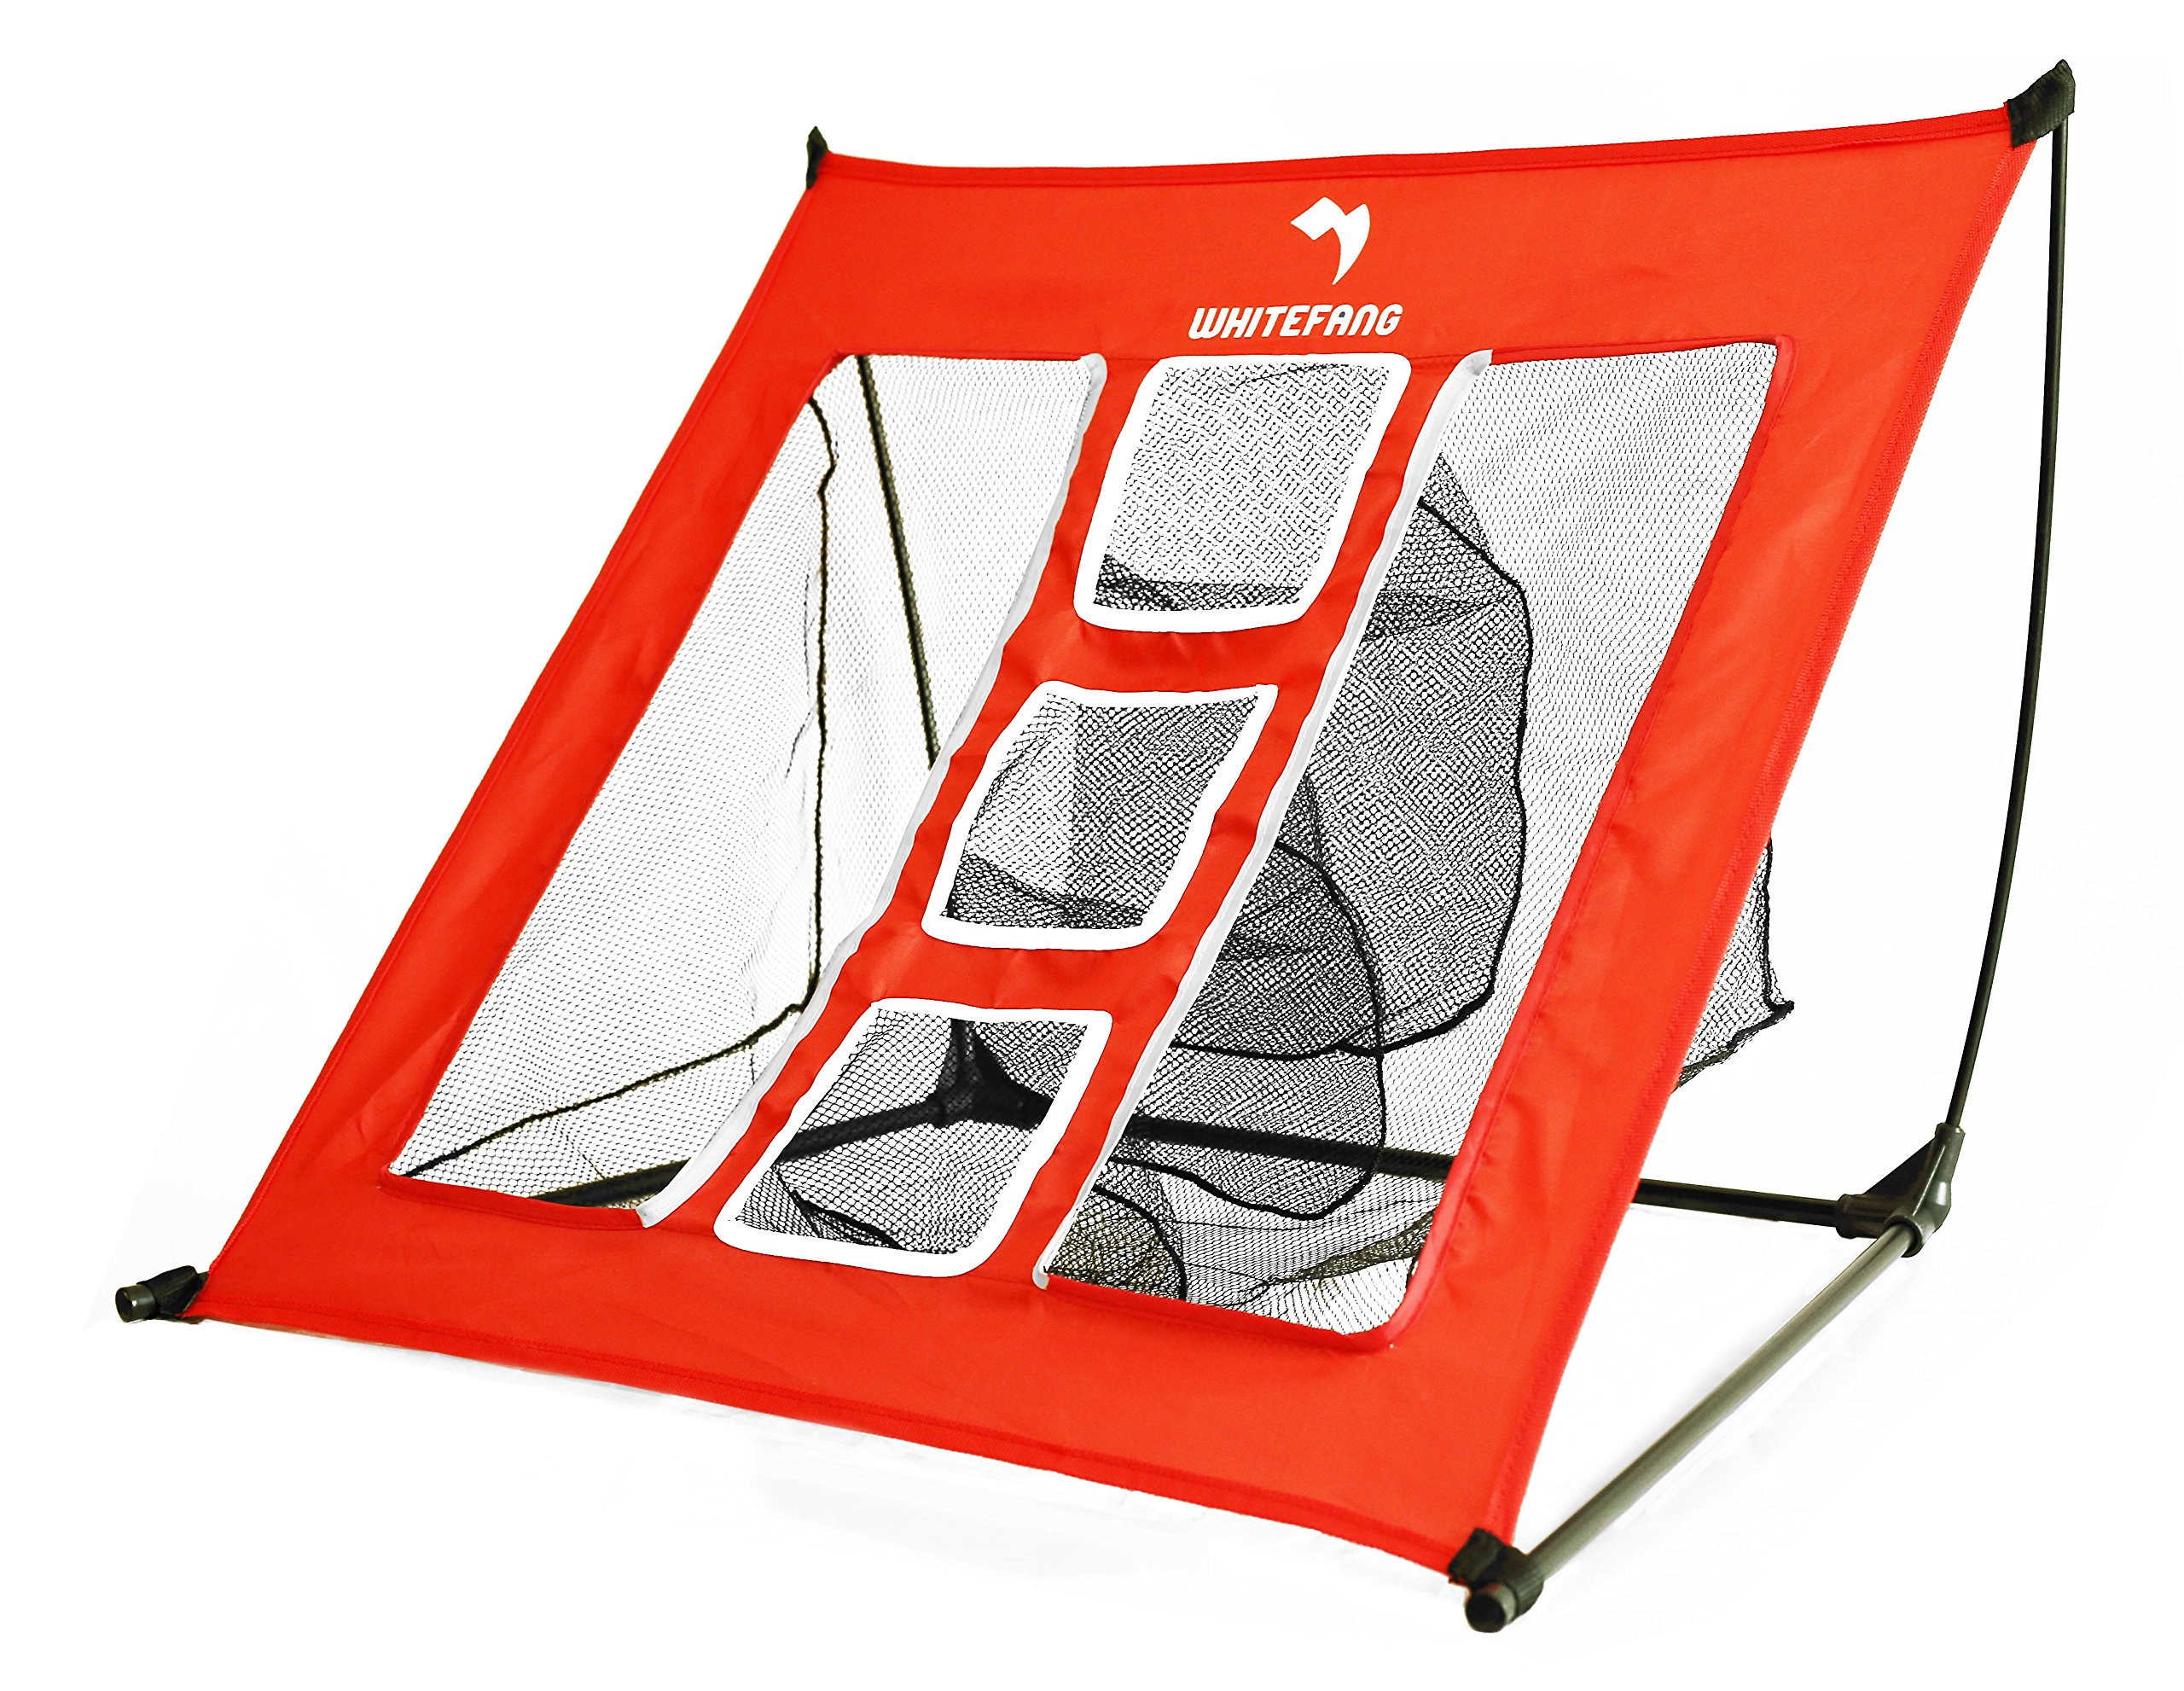 Whitefang Golf Net 3.0,Golf Accessories Chipping Net with Sturdy Structure and Simple Storage Instruction for Backyard Driving,Indoor,Outdoor